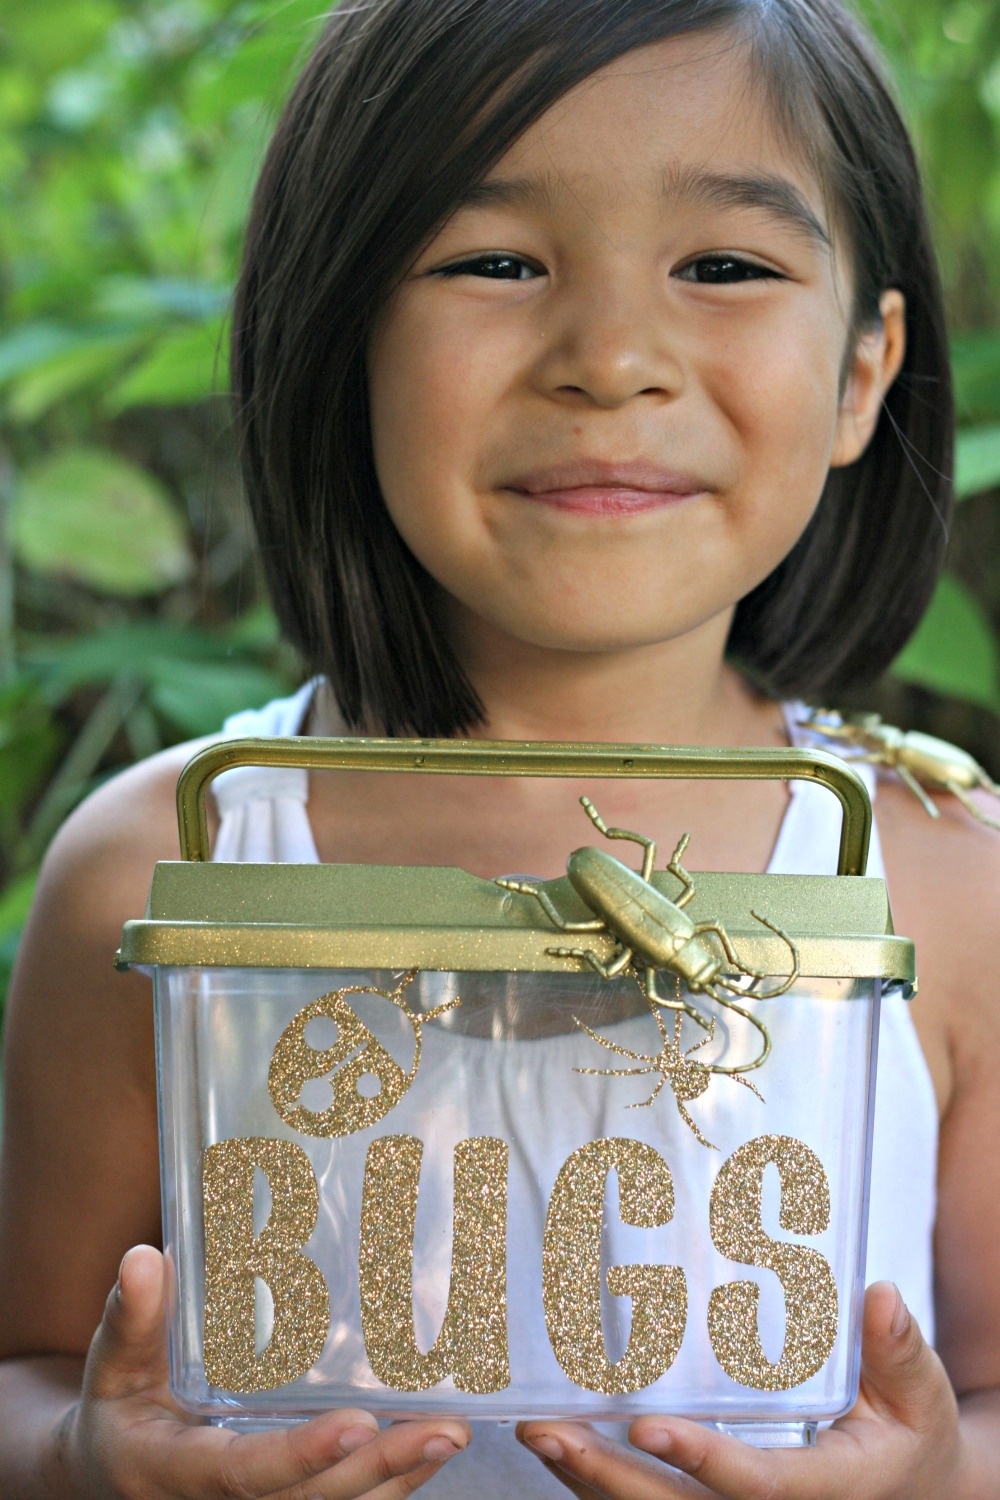 Glitter and Gold Blinged Out Bug Catcher